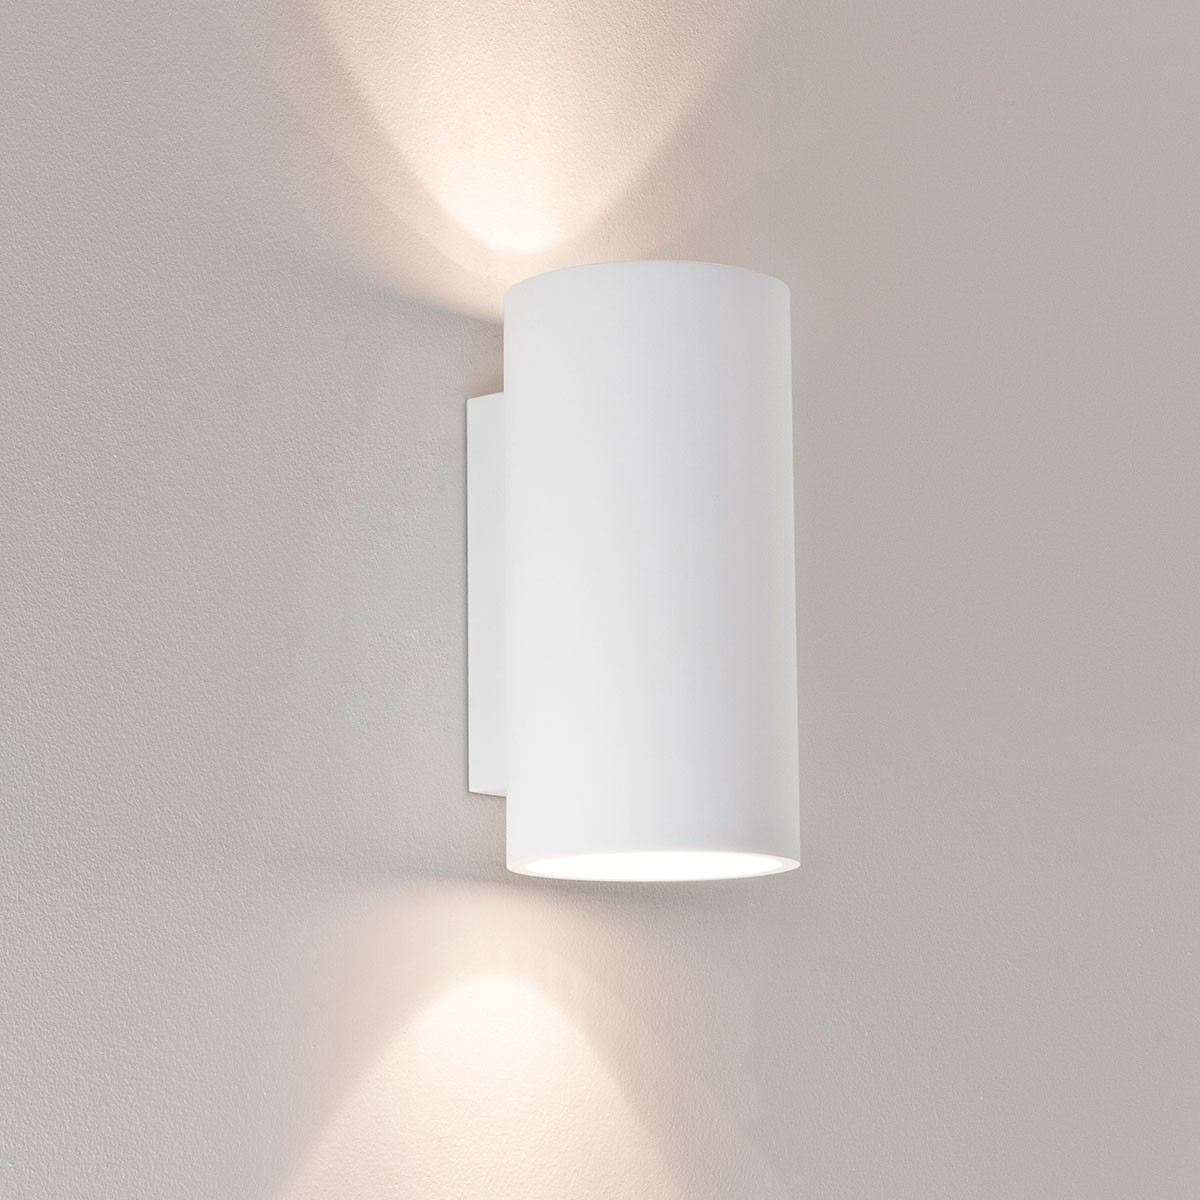 Wall Lights Plaster Finish : Astro Bologna 240 Plaster Wall Light at UK Electrical Supplies.